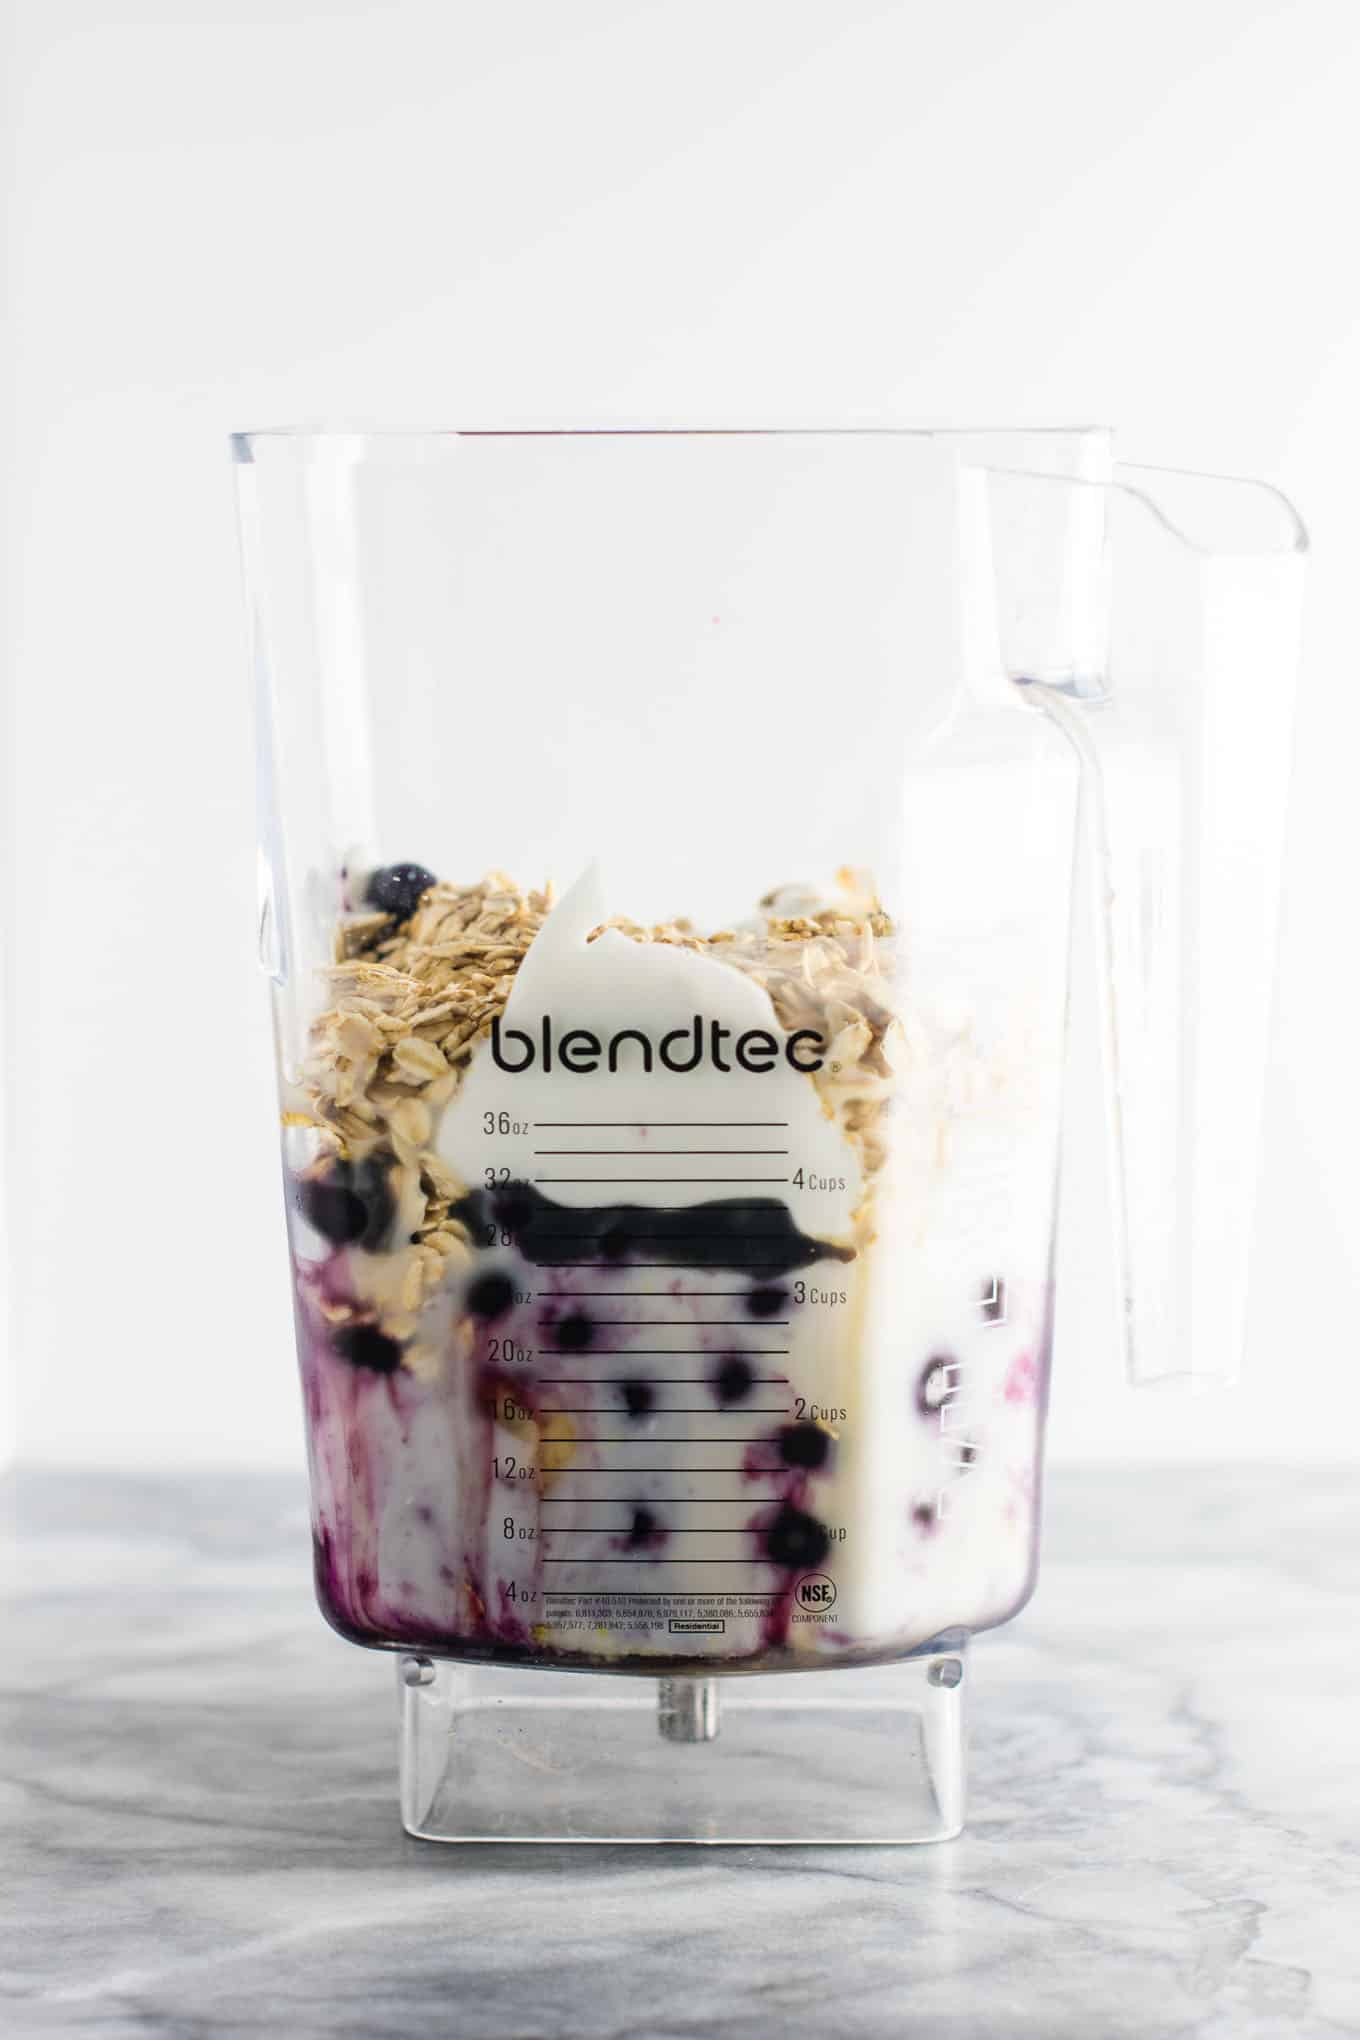 Healthy blueberry pie smoothie recipe with greek yogurt and rolled oats. A breakfast or dessert full of juicy blueberry flavor! #healthy #blueberrysmoothie #blueberrypiesmoothie #vegetarian #greekyogurt #lemonzest #glutenfree